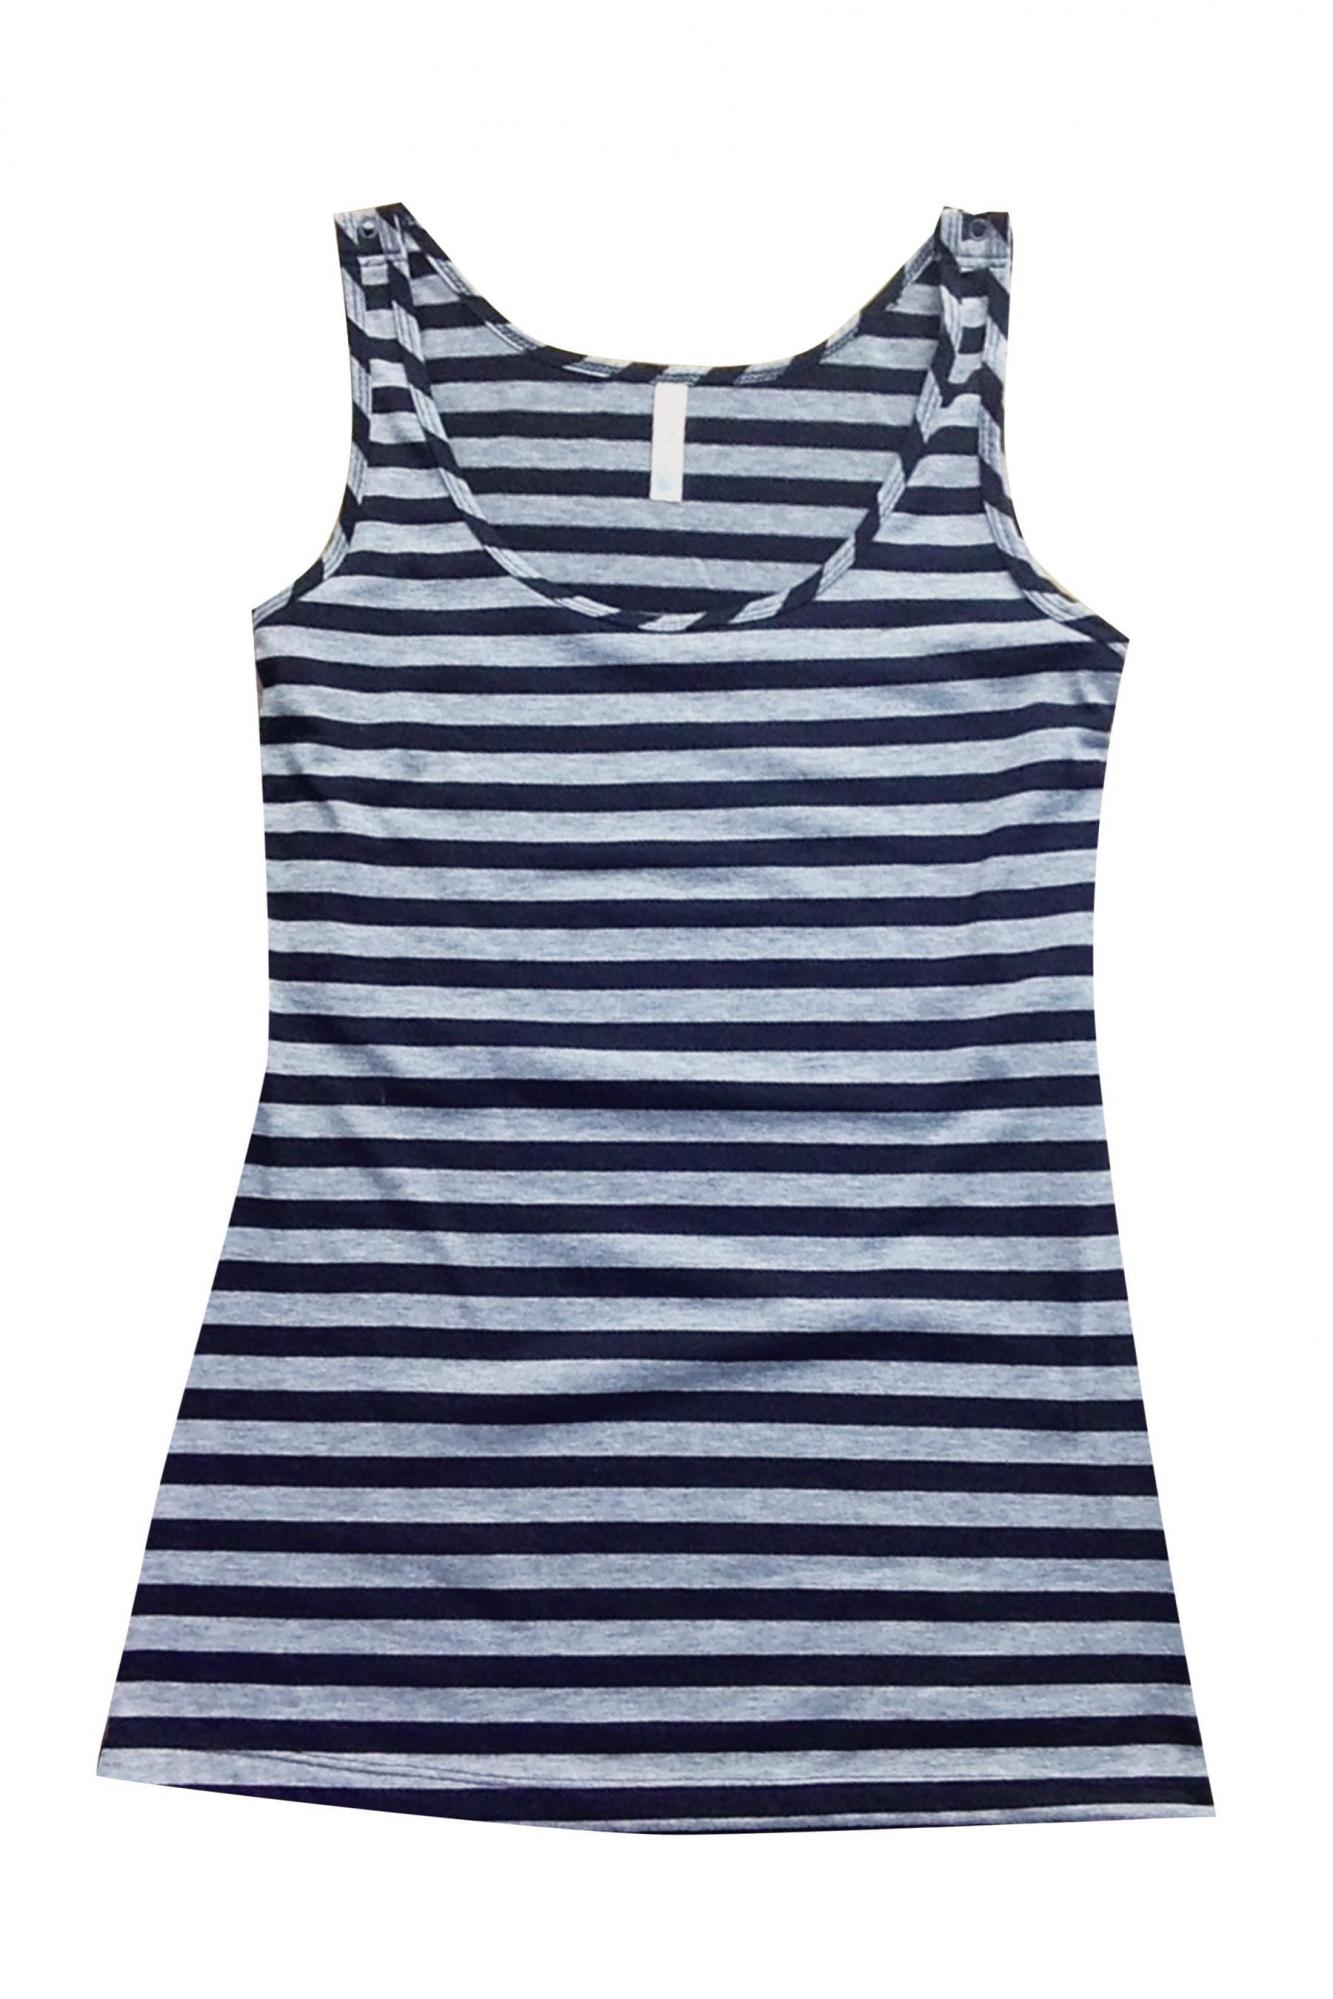 bun-long-nursing-tank-black-grey-stripes-flat.jpg